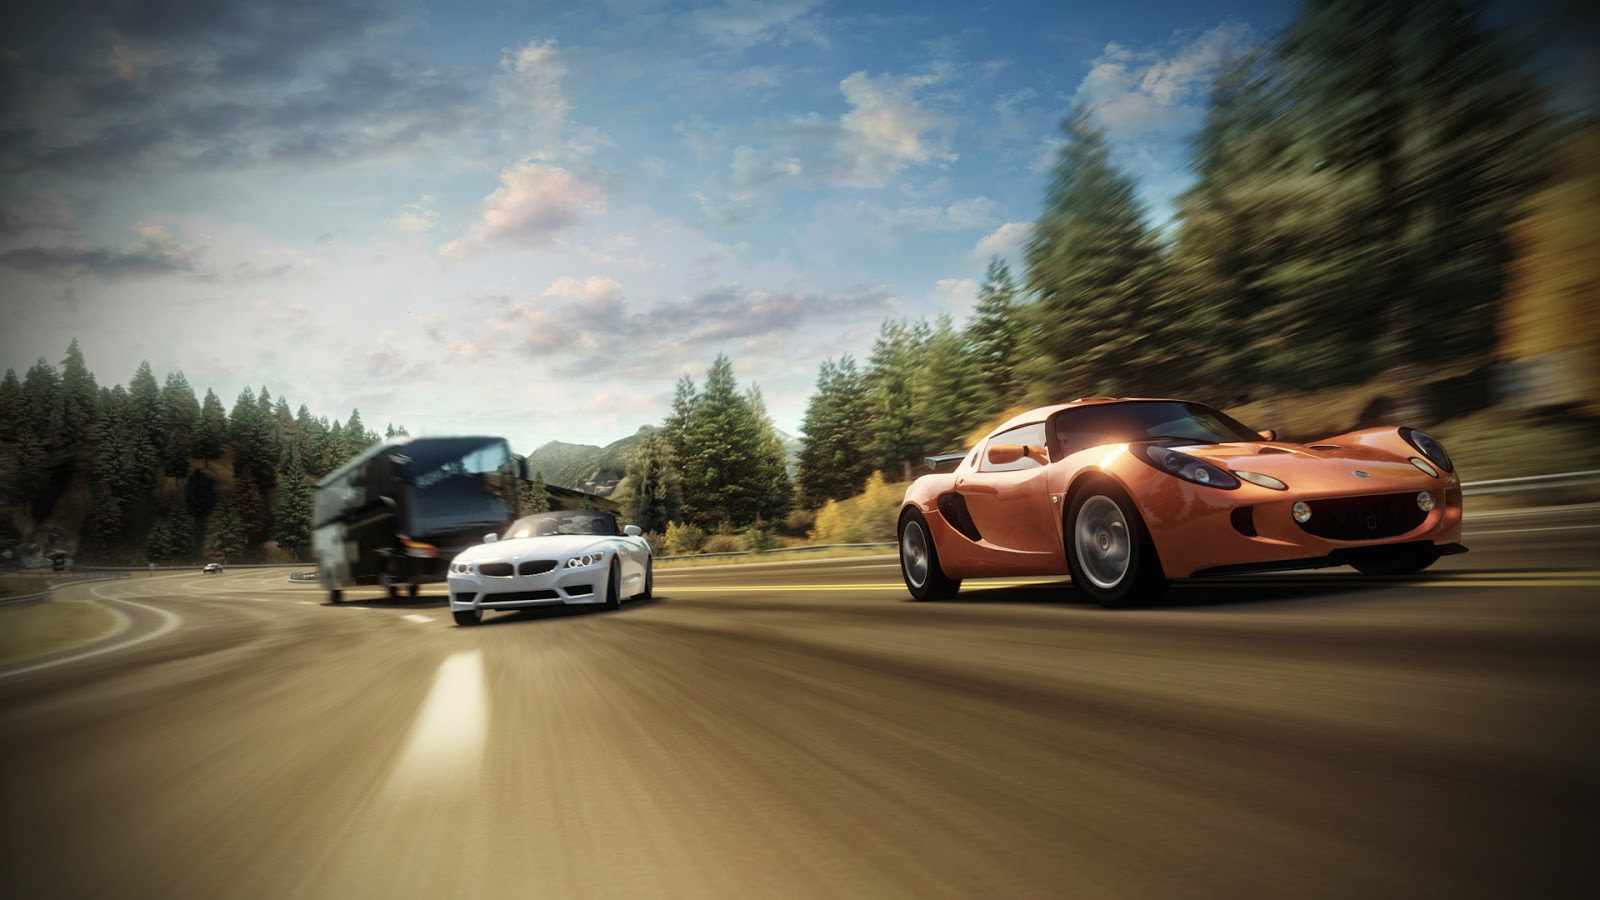 Forza Horizon HD & Widescreen Wallpaper 0.401879650453683